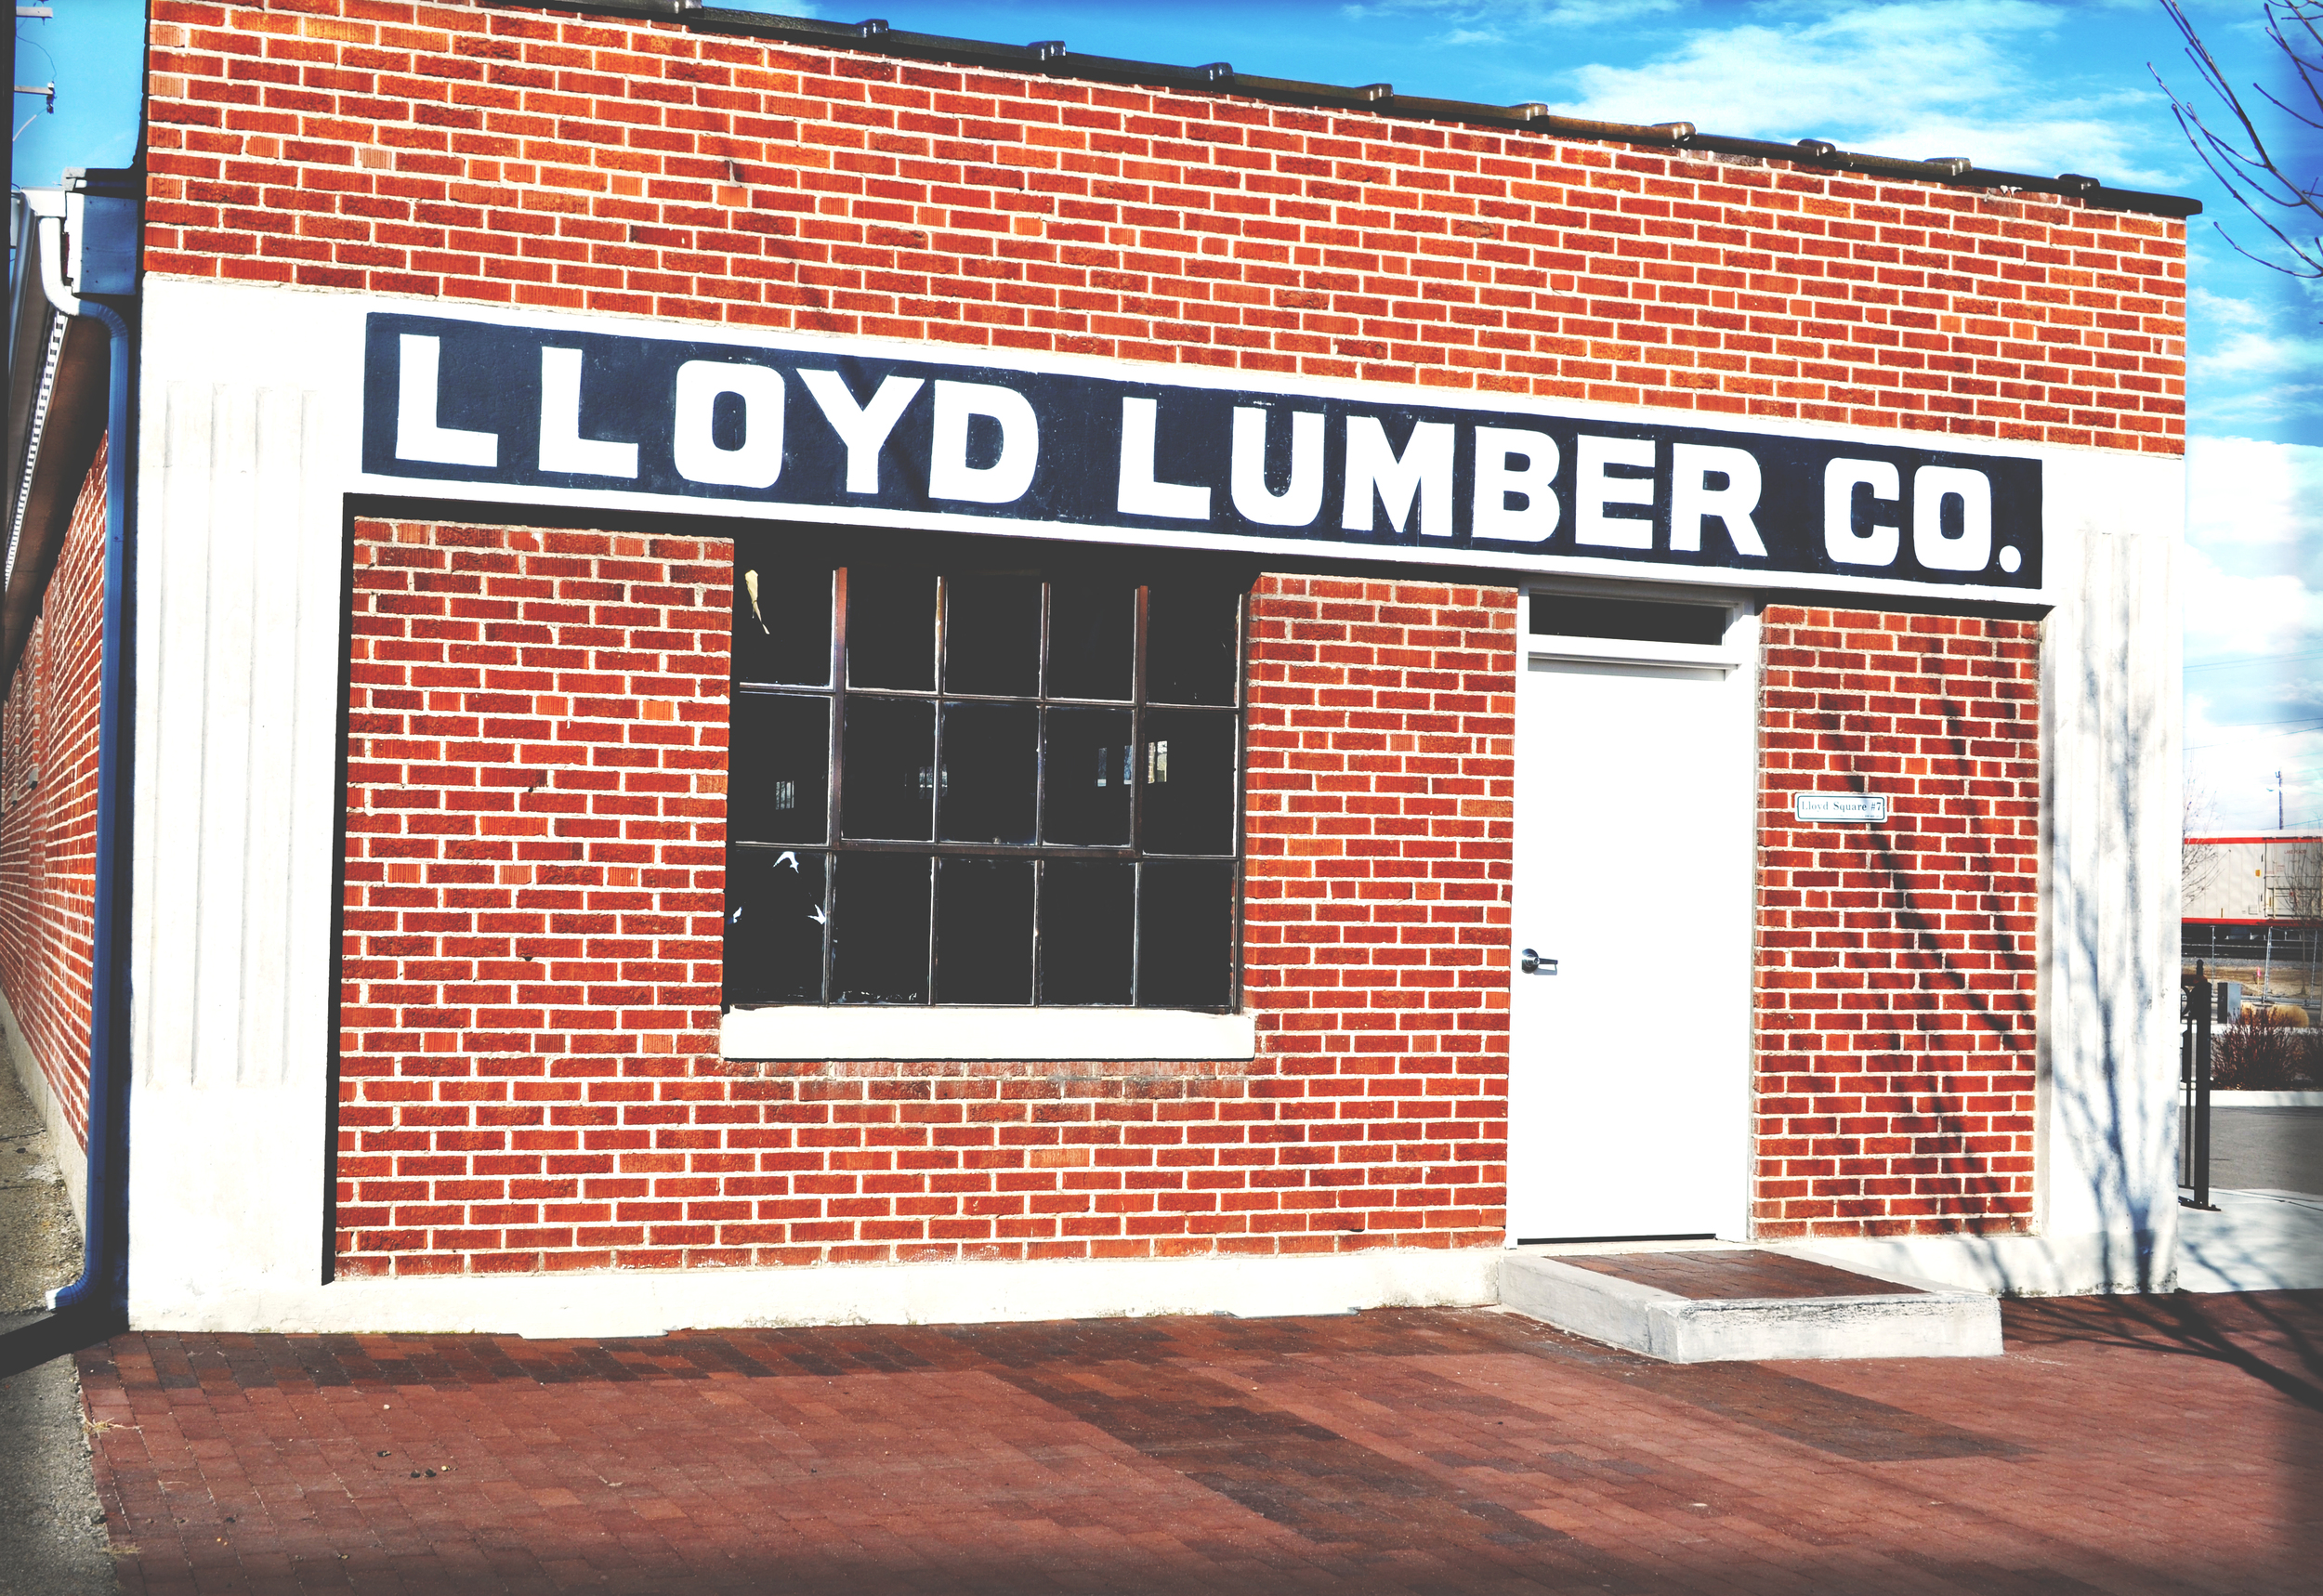 Lloyd Lumber Co. Shipping Yard | Nampa, Idaho | All Rights Reserved: Heather Woolery 2016